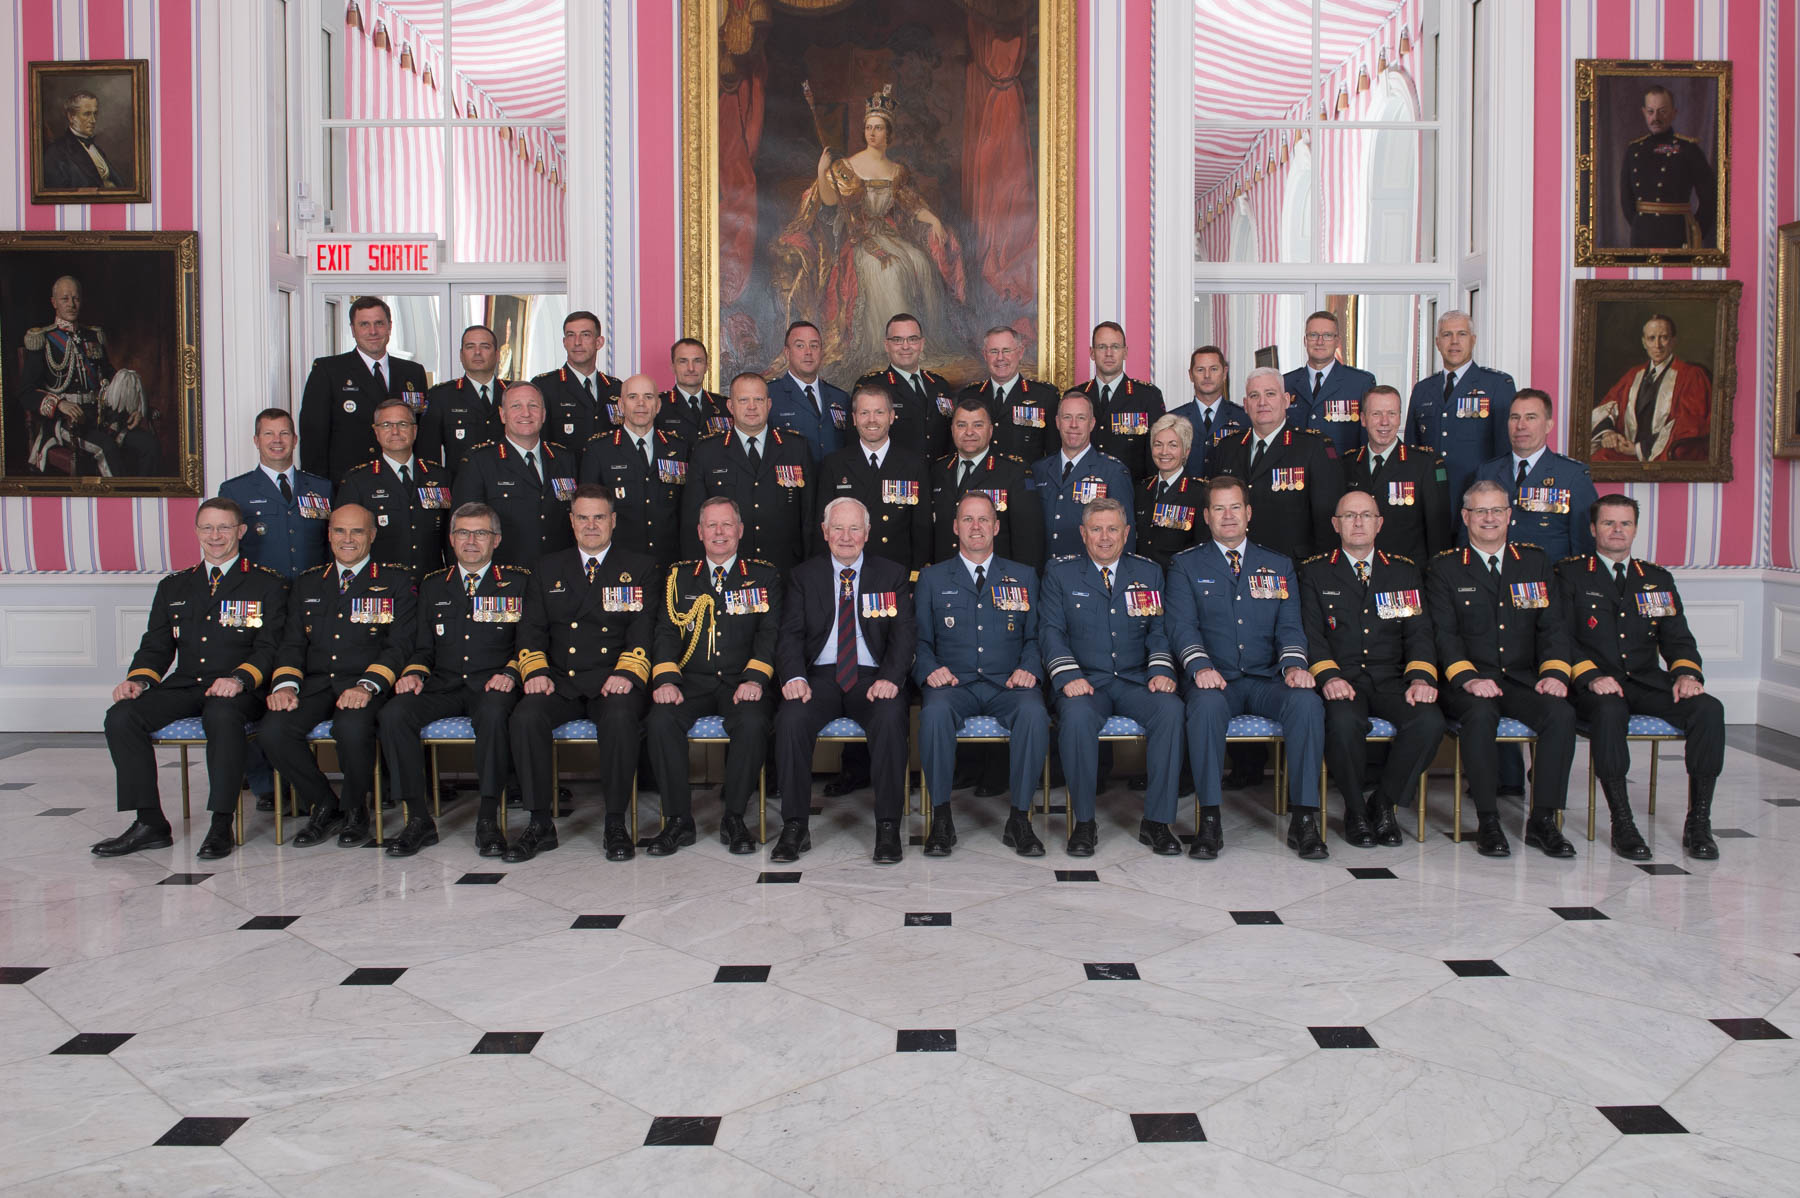 Twenty-three Canadian Armed Forces members received their scrolls from the Governor General and the Chief of the Defense Staff.